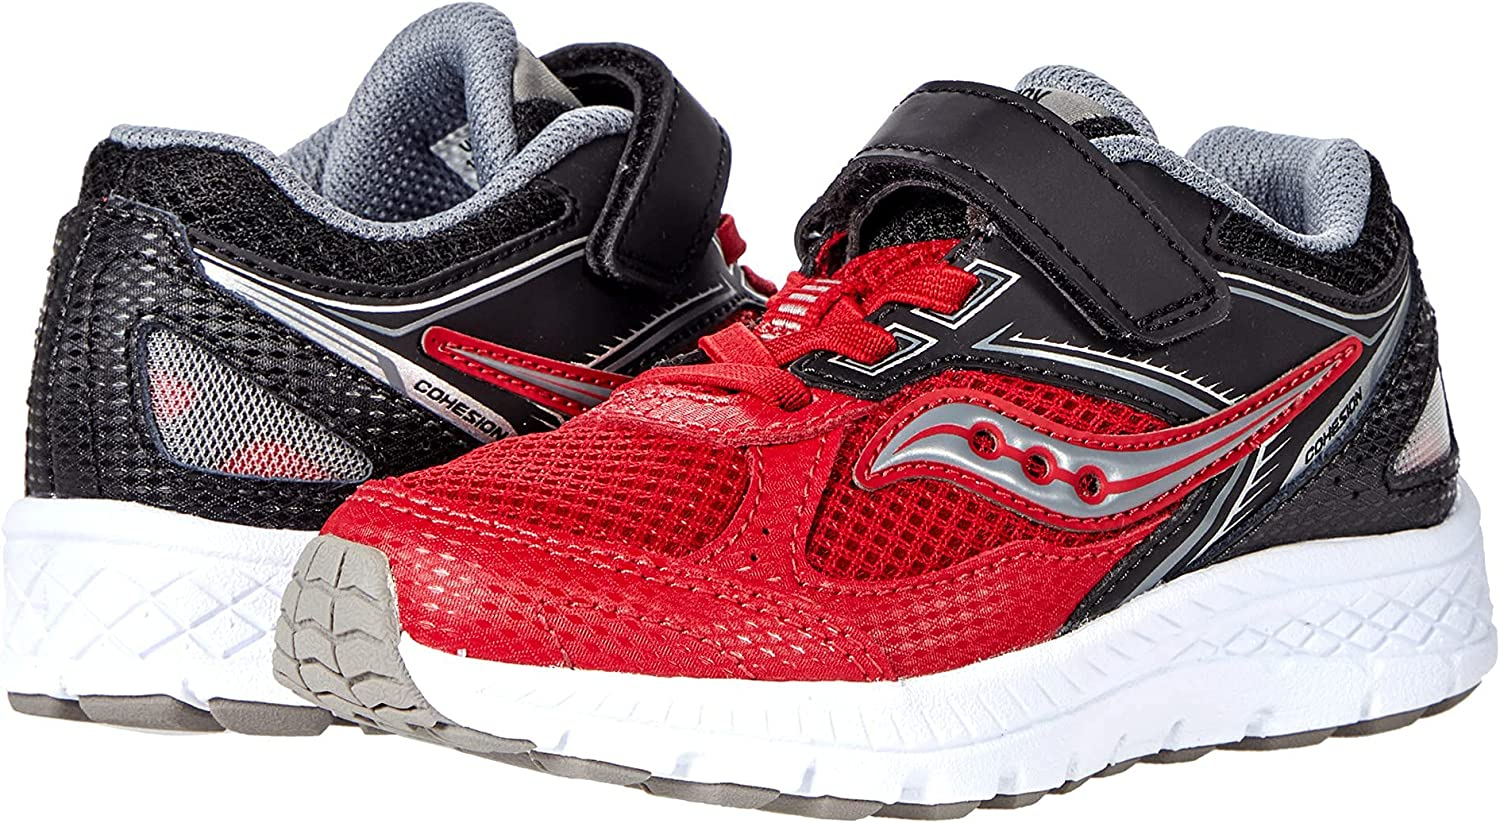 Free shipping / New Saucony Cohesion 14 Alternative Closure Black Shoe RED OFFicial mail order Running